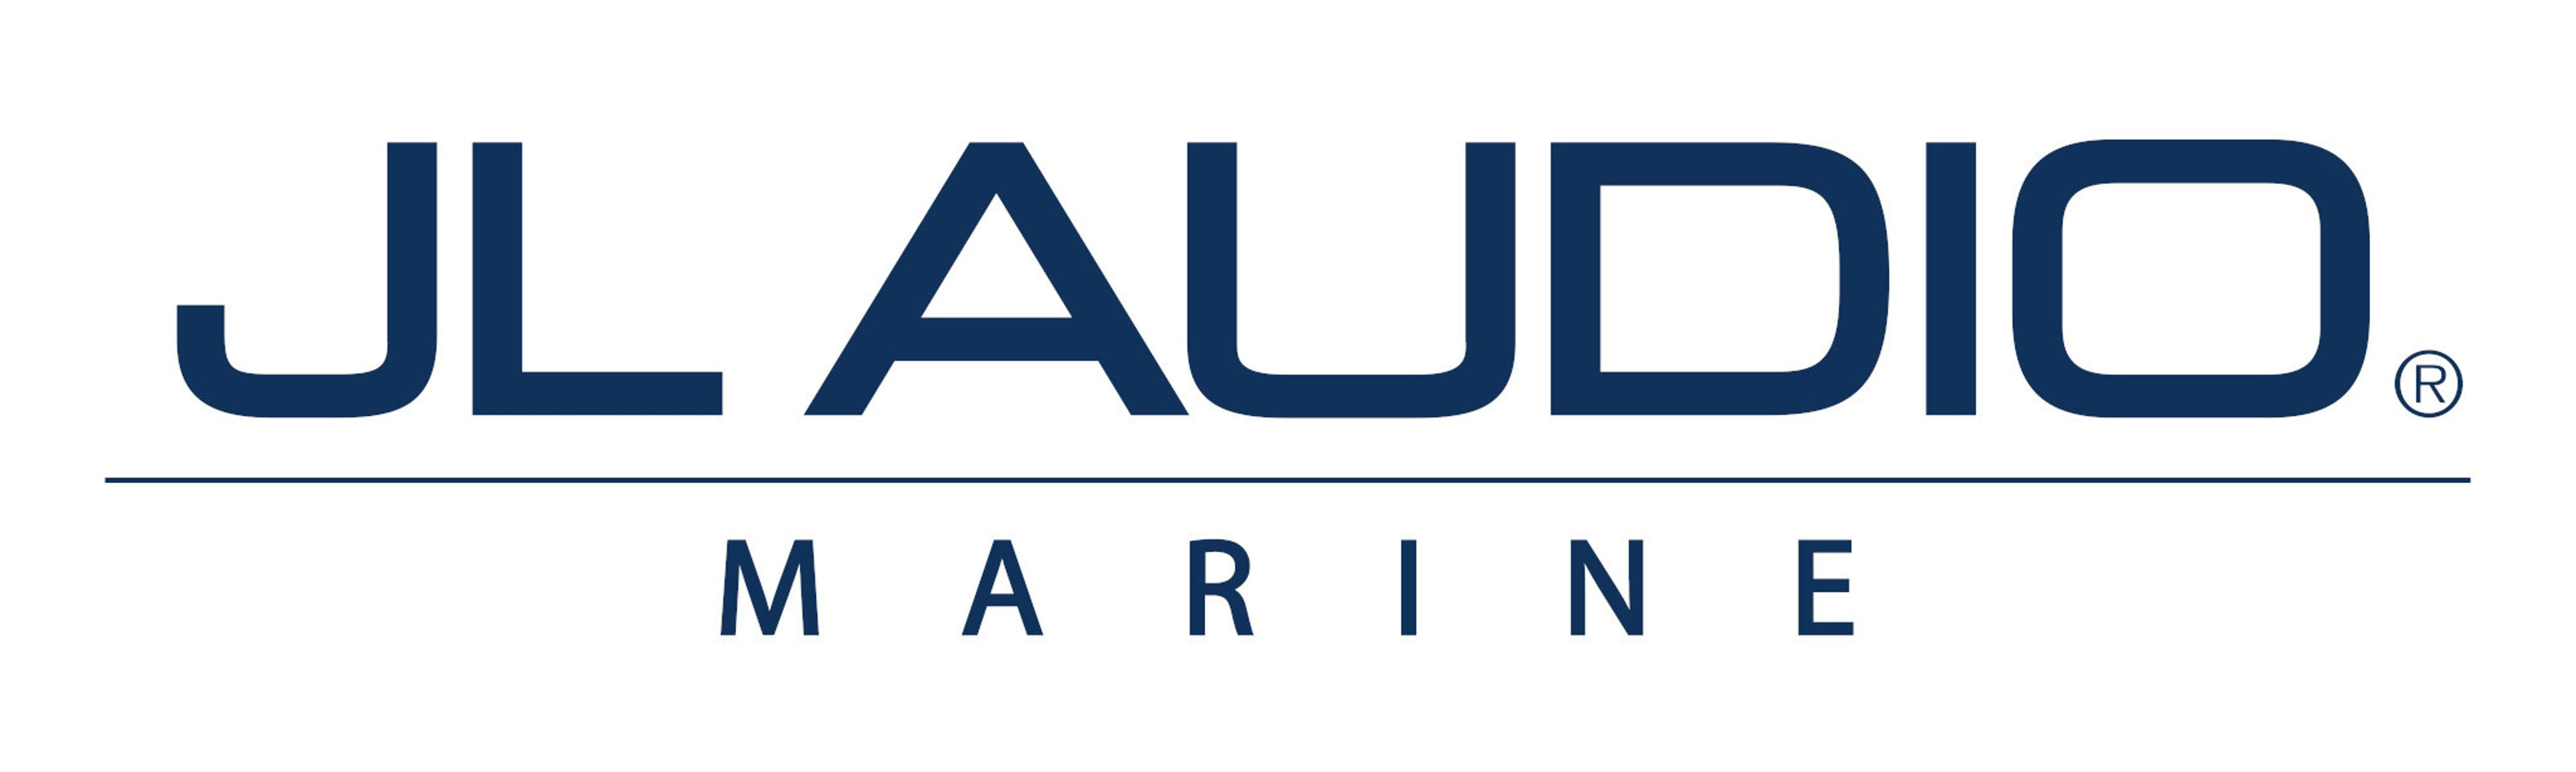 Blue JL Audio Marine Logo Decal